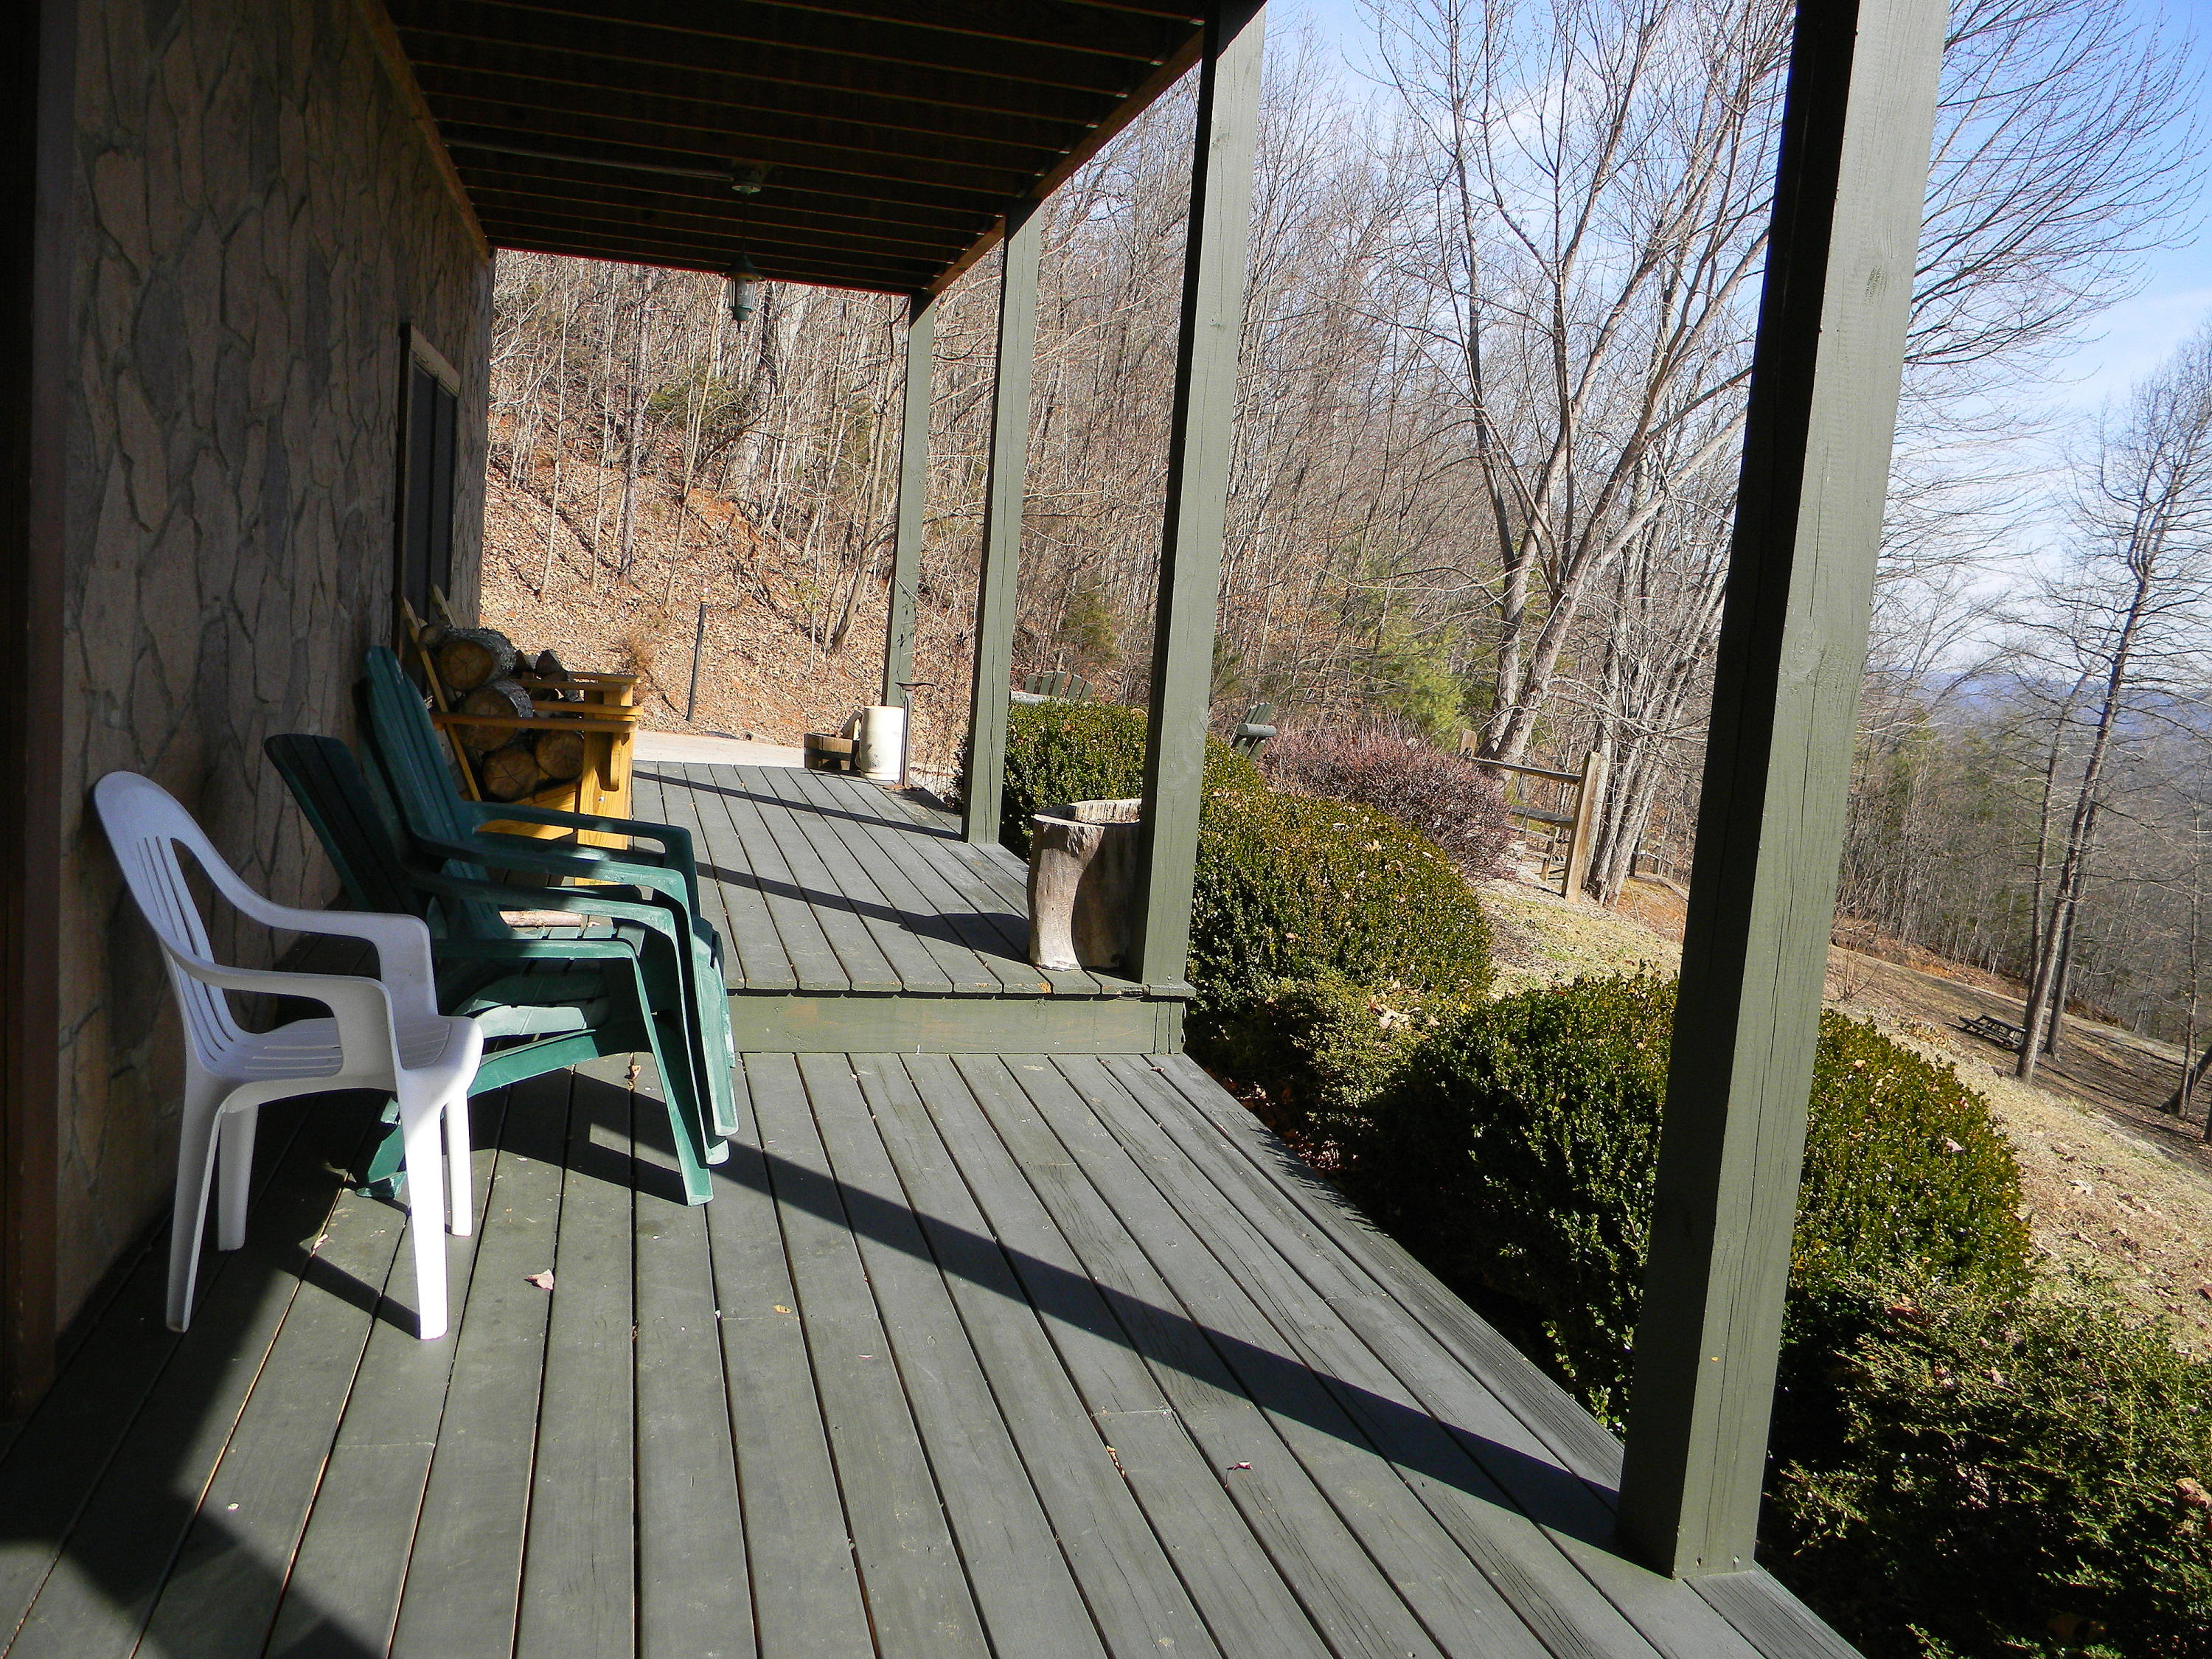 241 Settlers Point Rd: